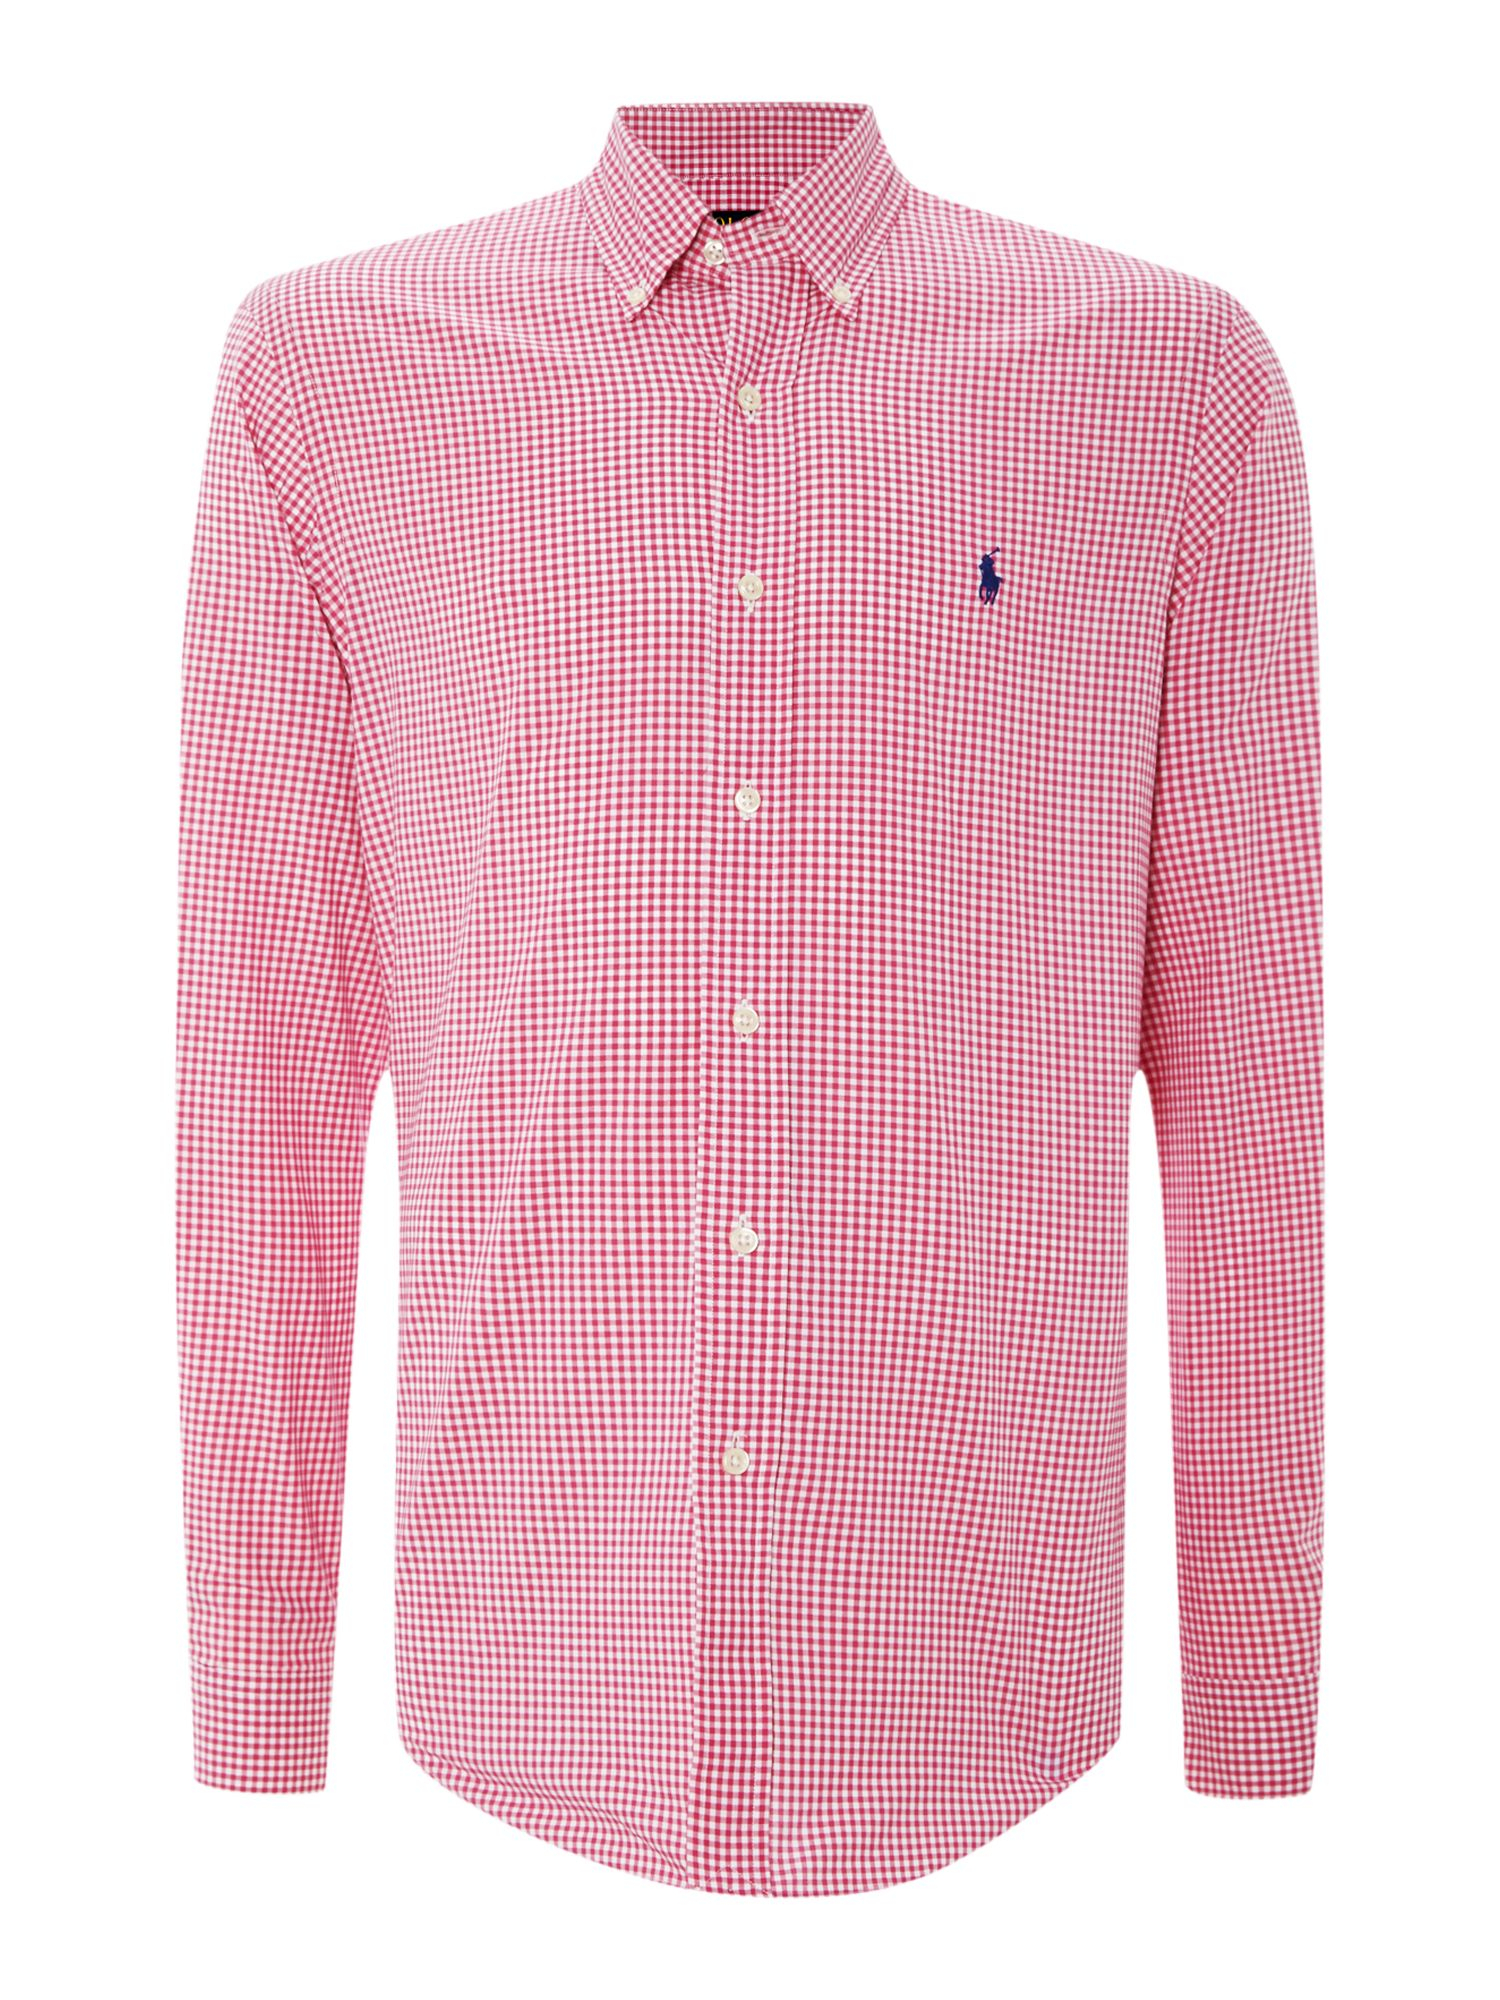 Polo ralph lauren long sleeve slim fit mini gingham shirt for Slim fit gingham check shirt